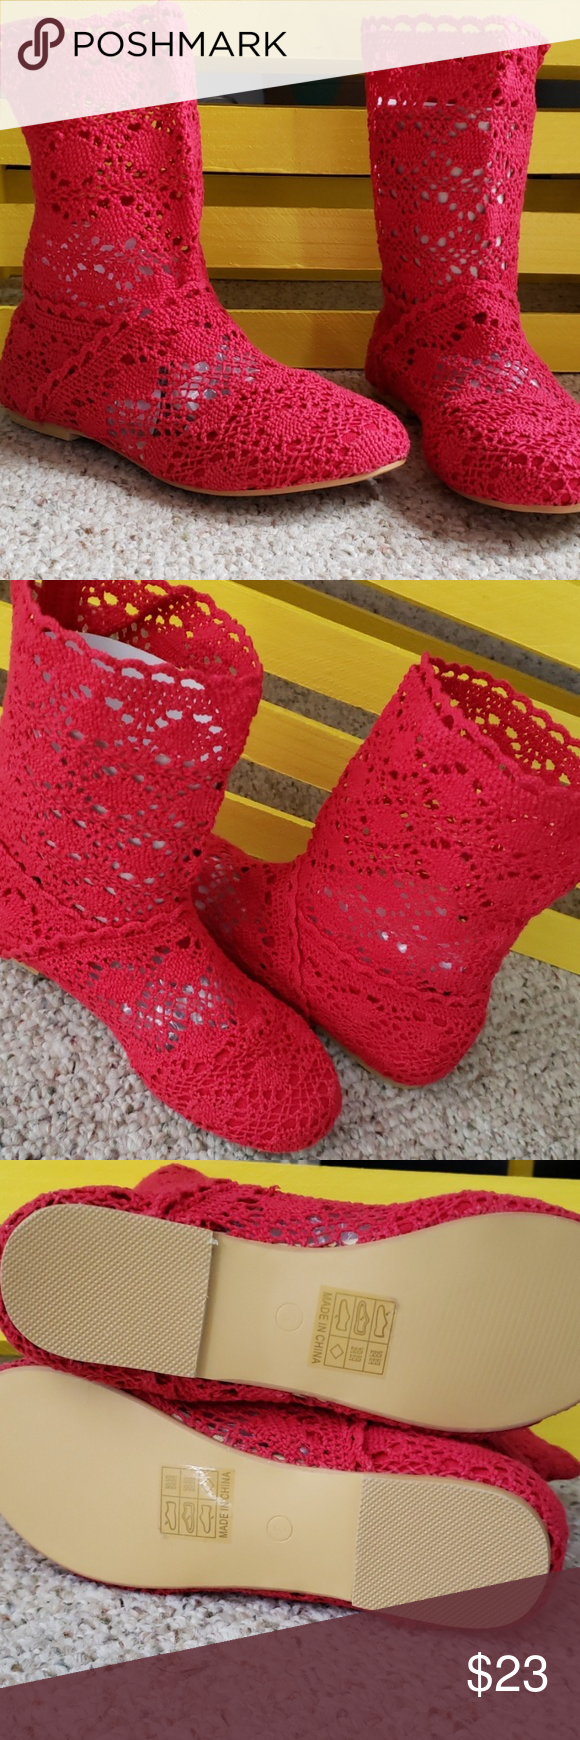 Red Crochet Lace Ankle Boots Cute red crochet lace ankle boot. Perfect to wear with a mini skirt, shorts or your favorite pair of skinny jeans. New w/o tags Shoelies Shoes Ankle Boots & Booties #skinnyjeansandankleboots Red Crochet Lace Ankle Boots Cute red crochet lace ankle boot. Perfect to wear with a mini skirt, shorts or your favorite pair of skinny jeans. New w/o tags Shoelies Shoes Ankle Boots & Booties #skinnyjeansandankleboots